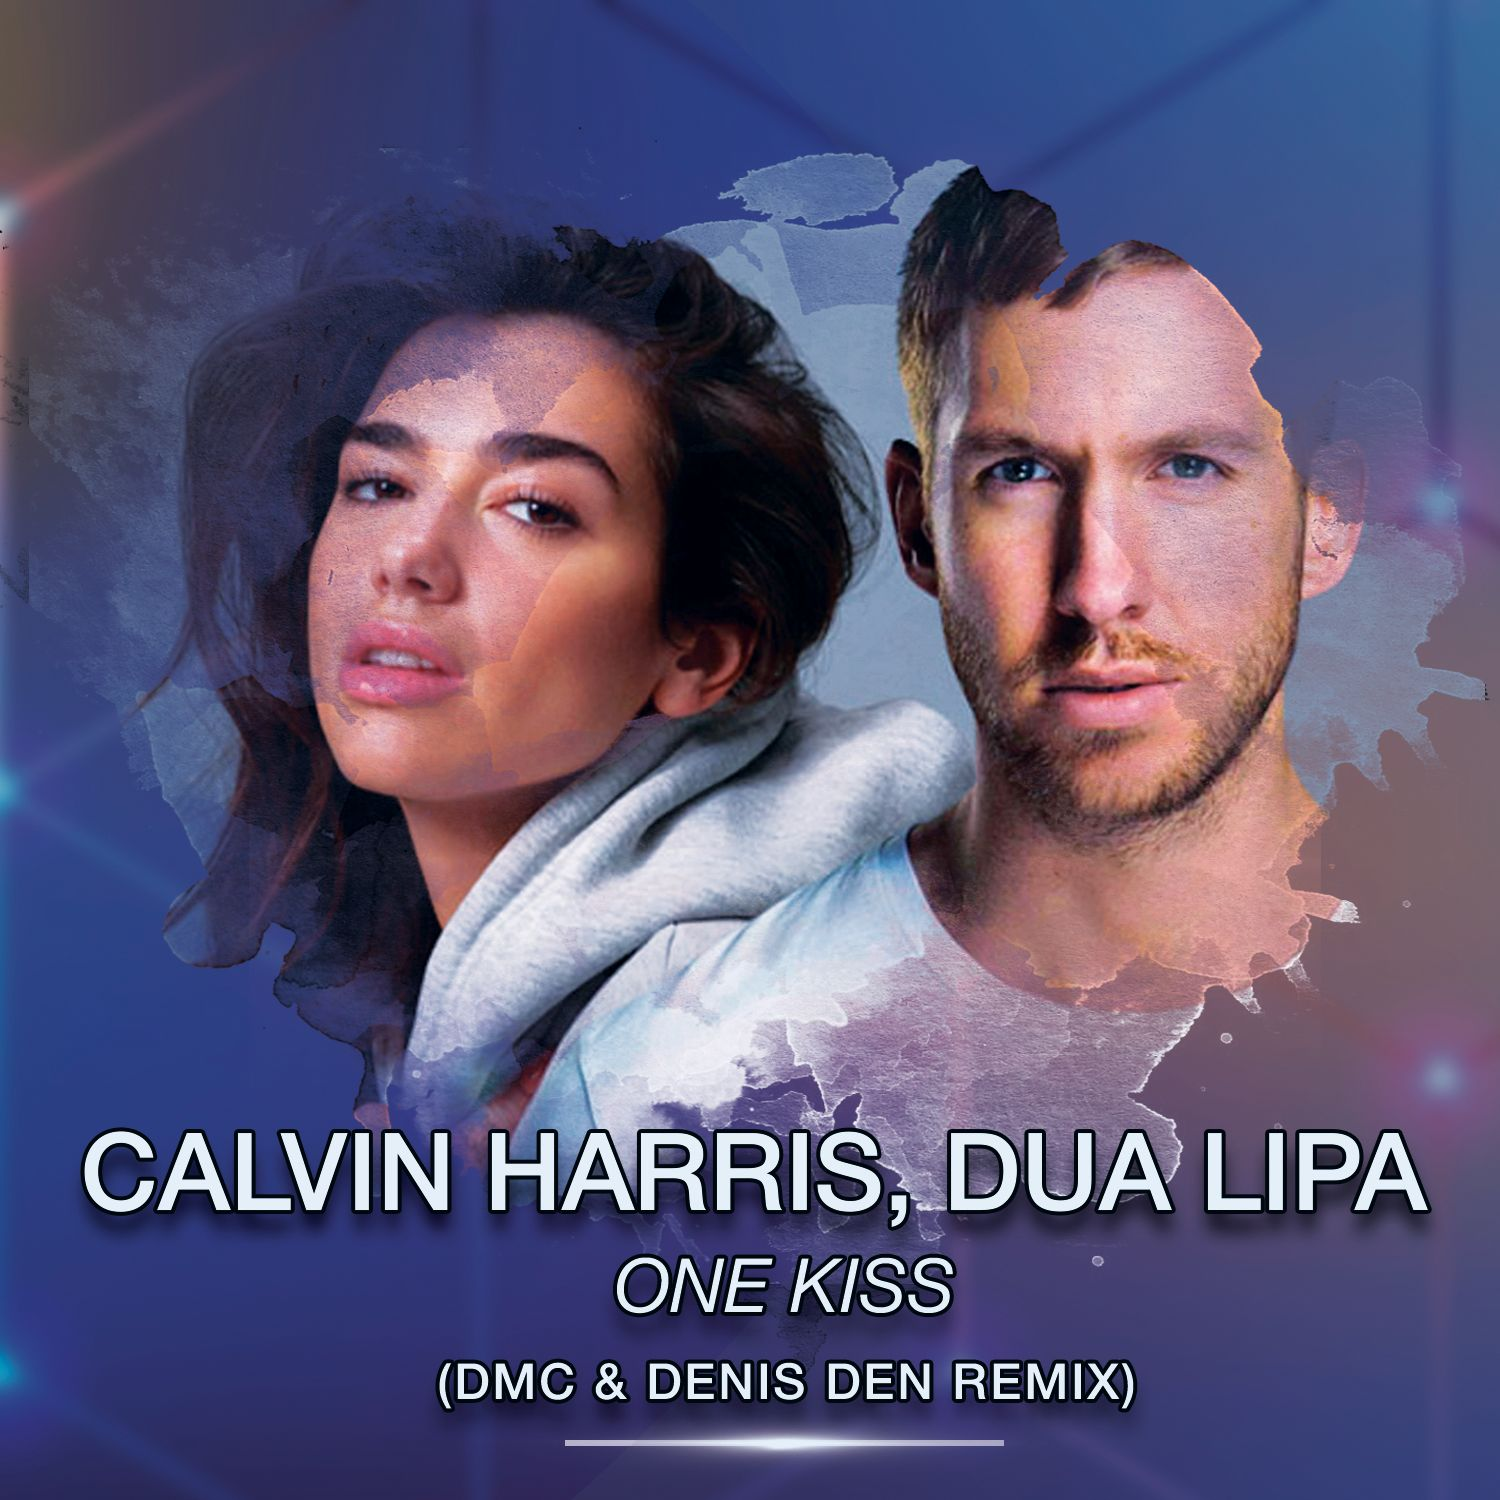 One Kiss Calvin Harris Dua Lipa: One Kiss (DMC & Denis Den Remix